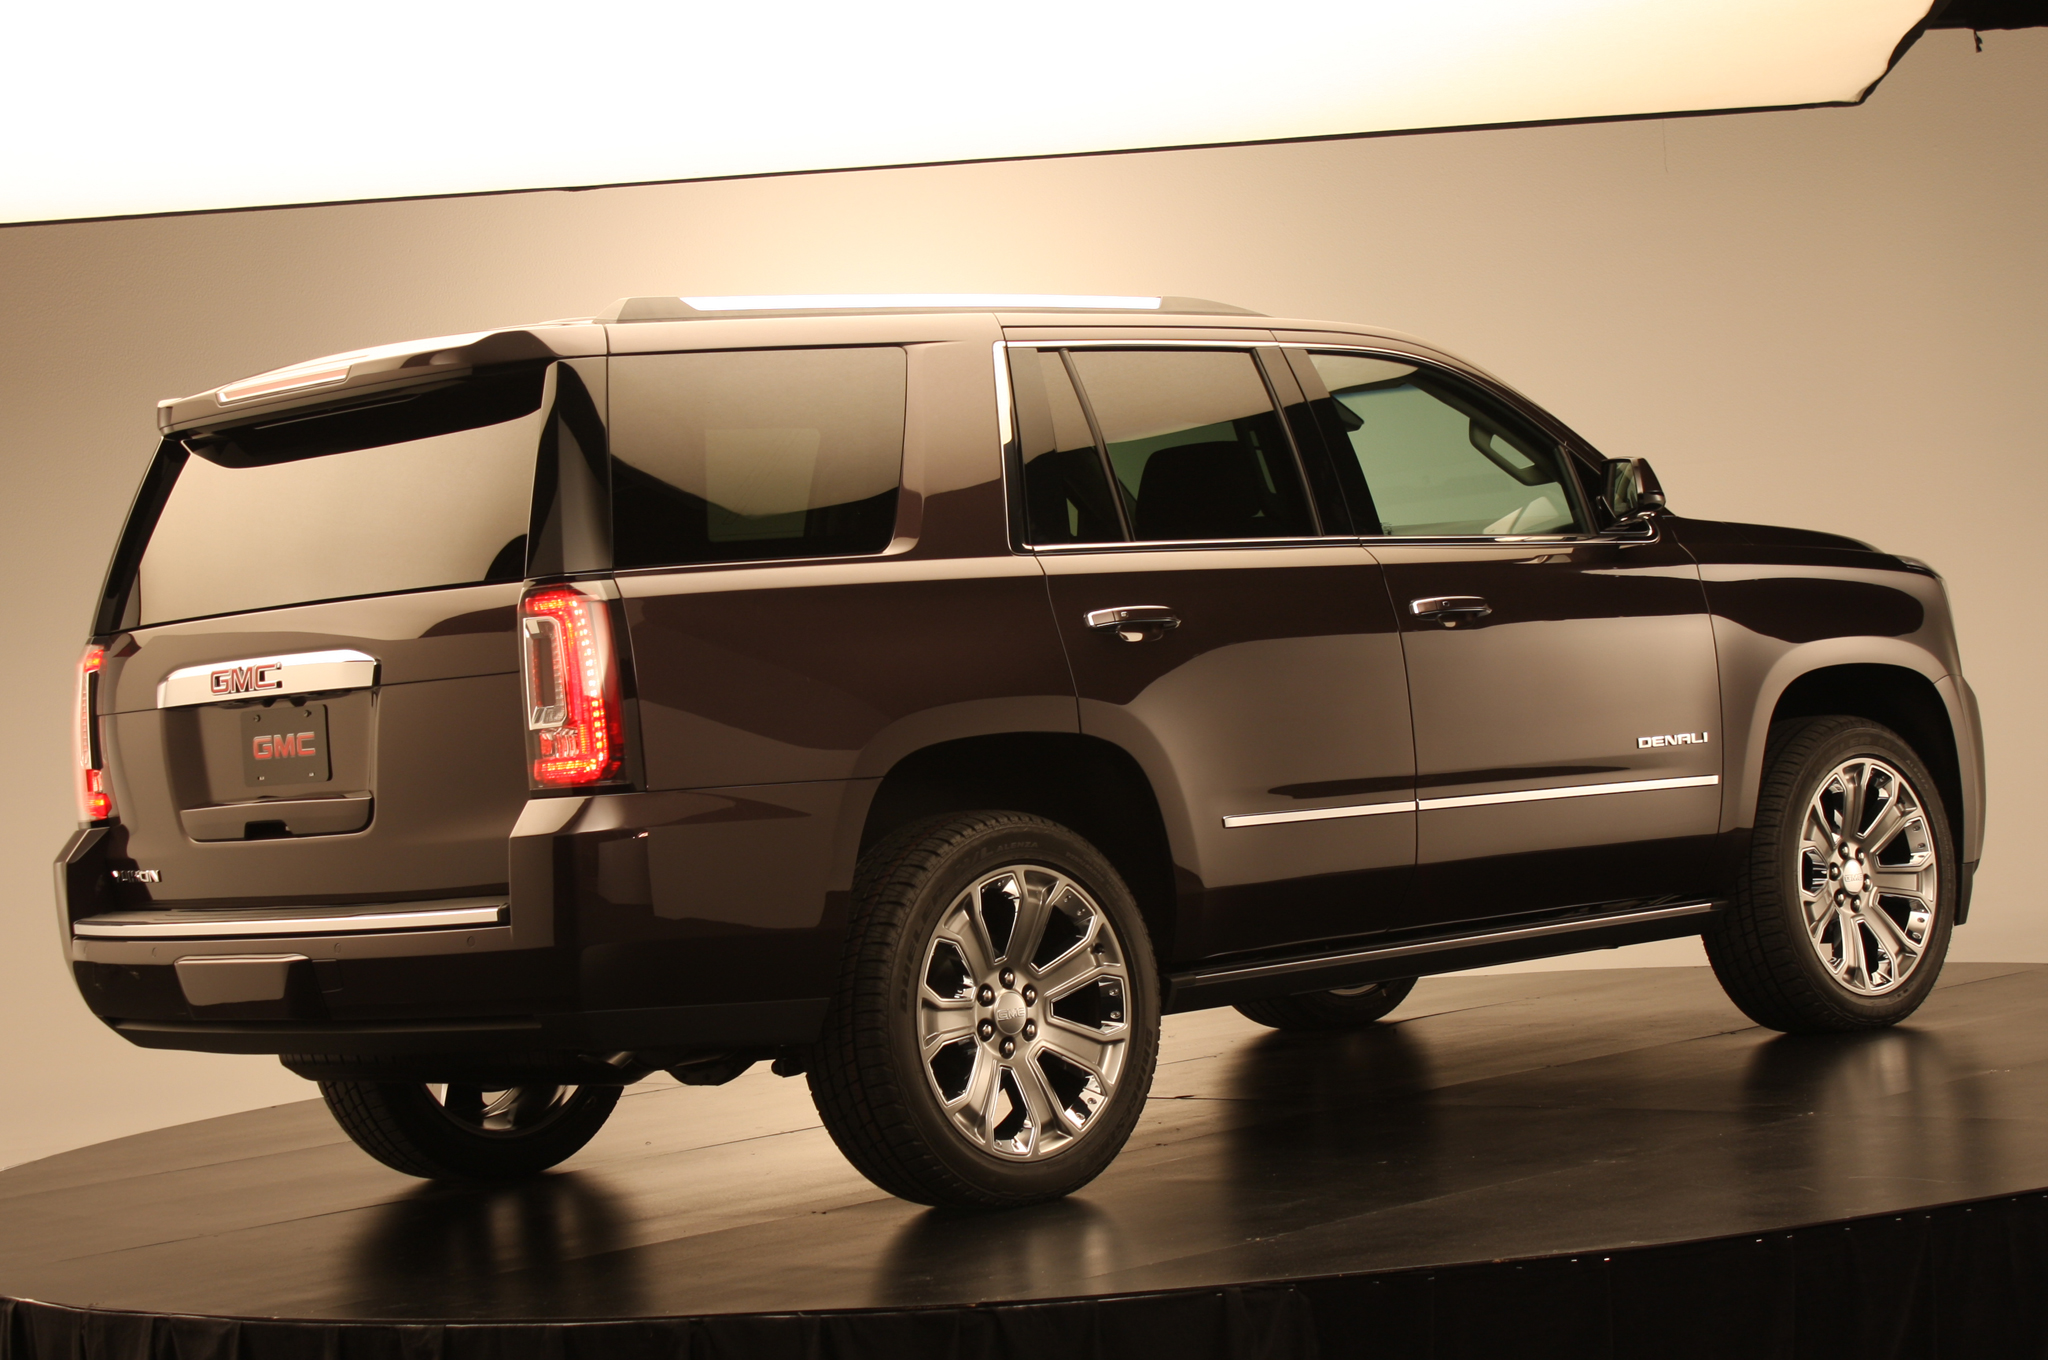 2015 GMC Yukon Denali photo - 3